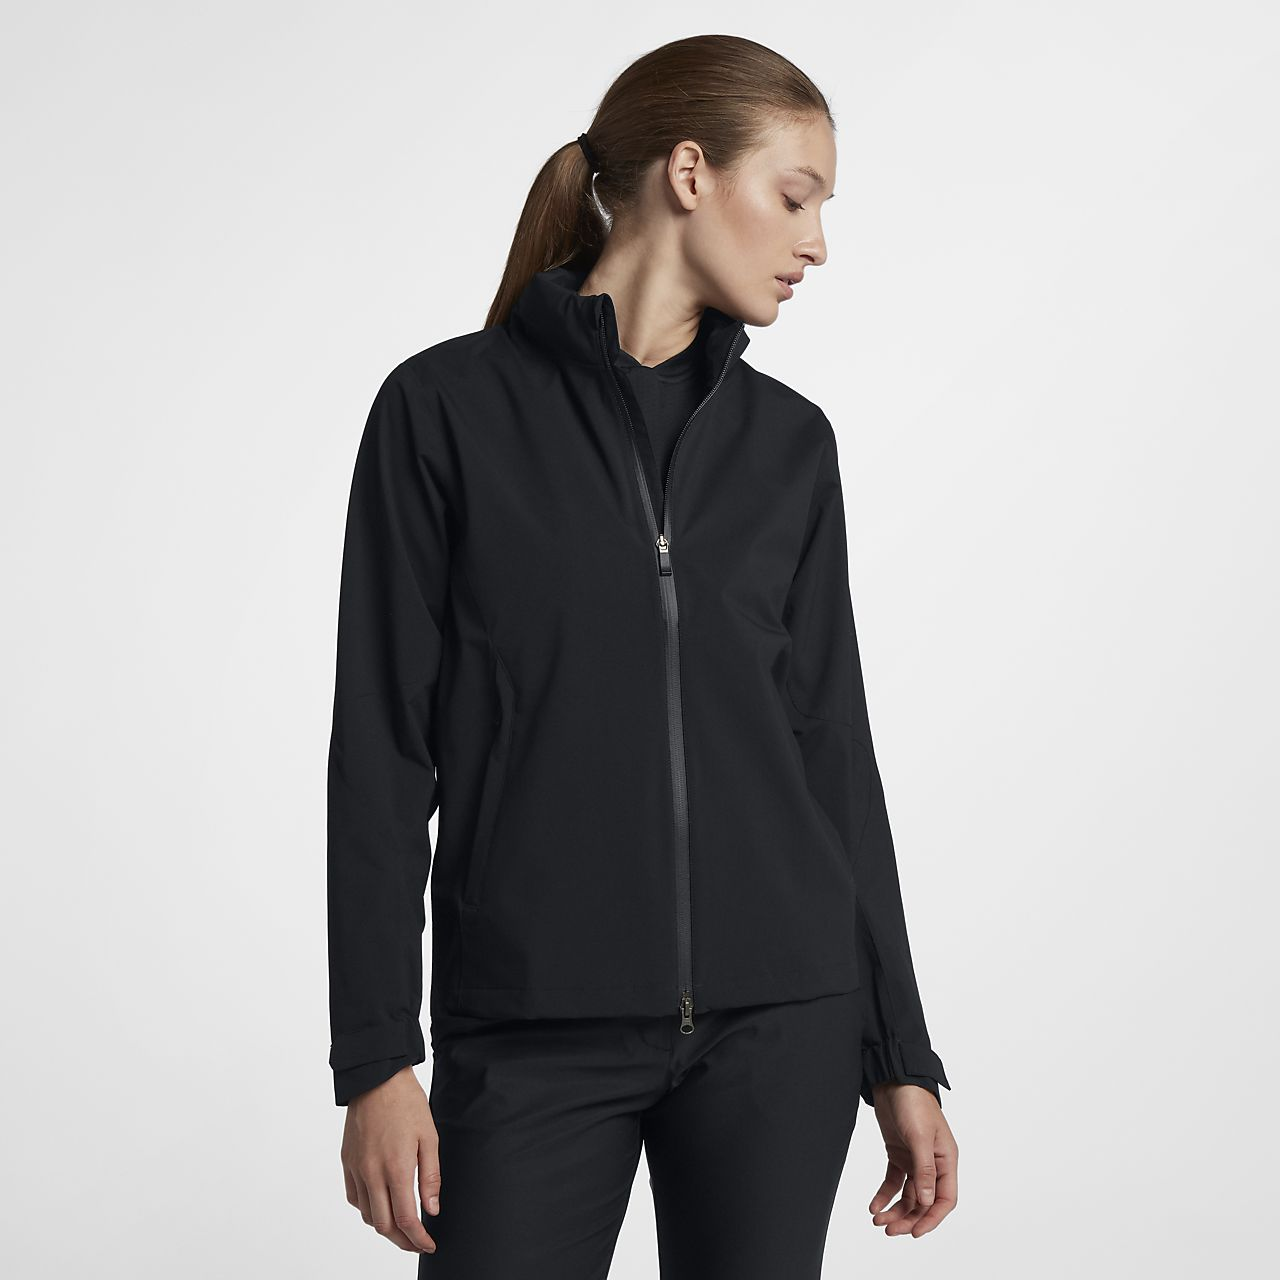 f5bd5012cb66 Nike HyperShield Women s Full-Zip Golf Jacket. Nike.com BE